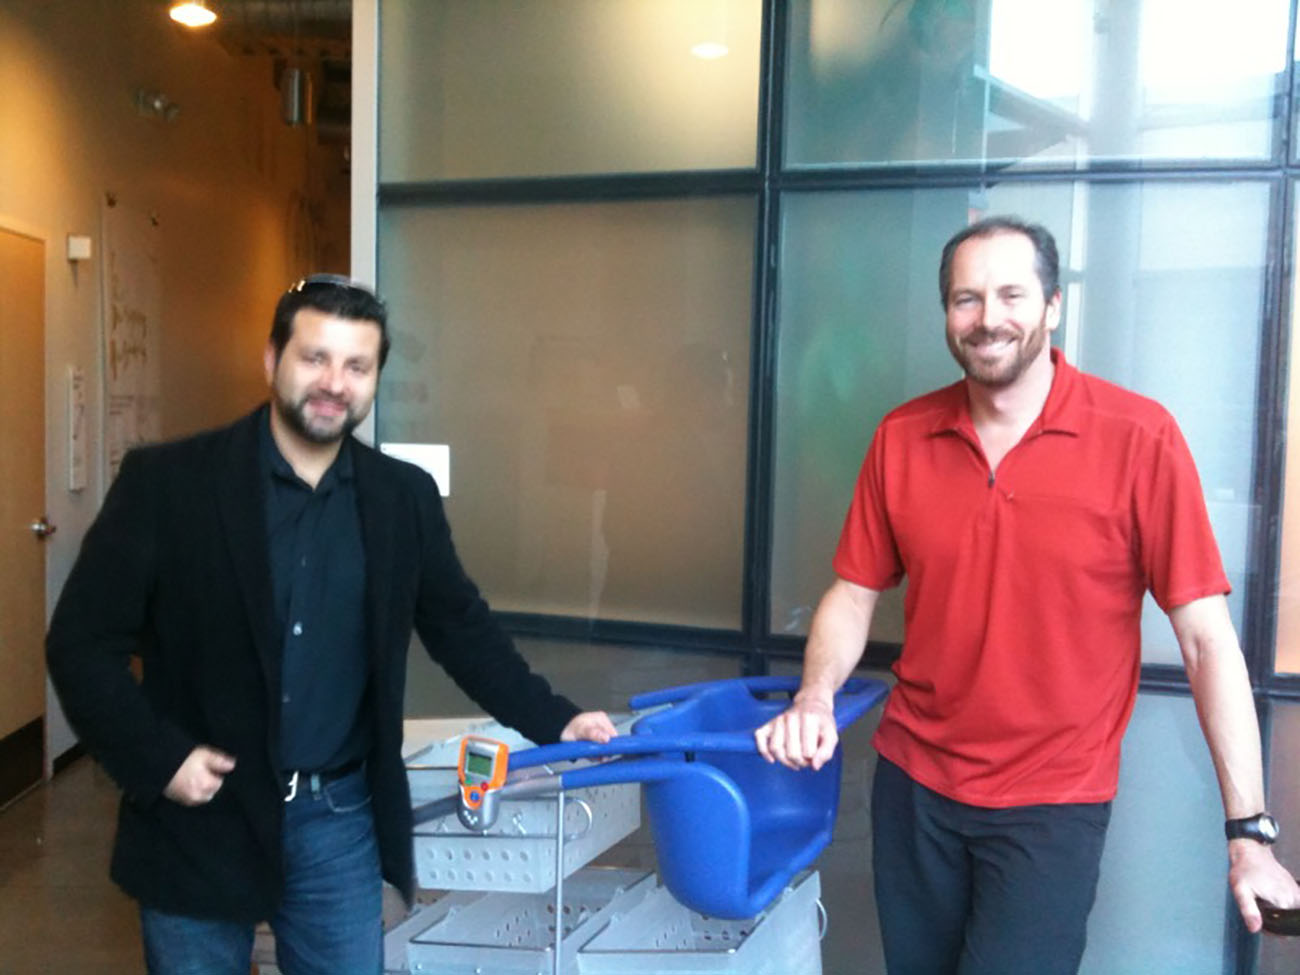 A photo shows two IDEO male representatives posing for the camera with a model of the new shopping cart introduced by IDEO.